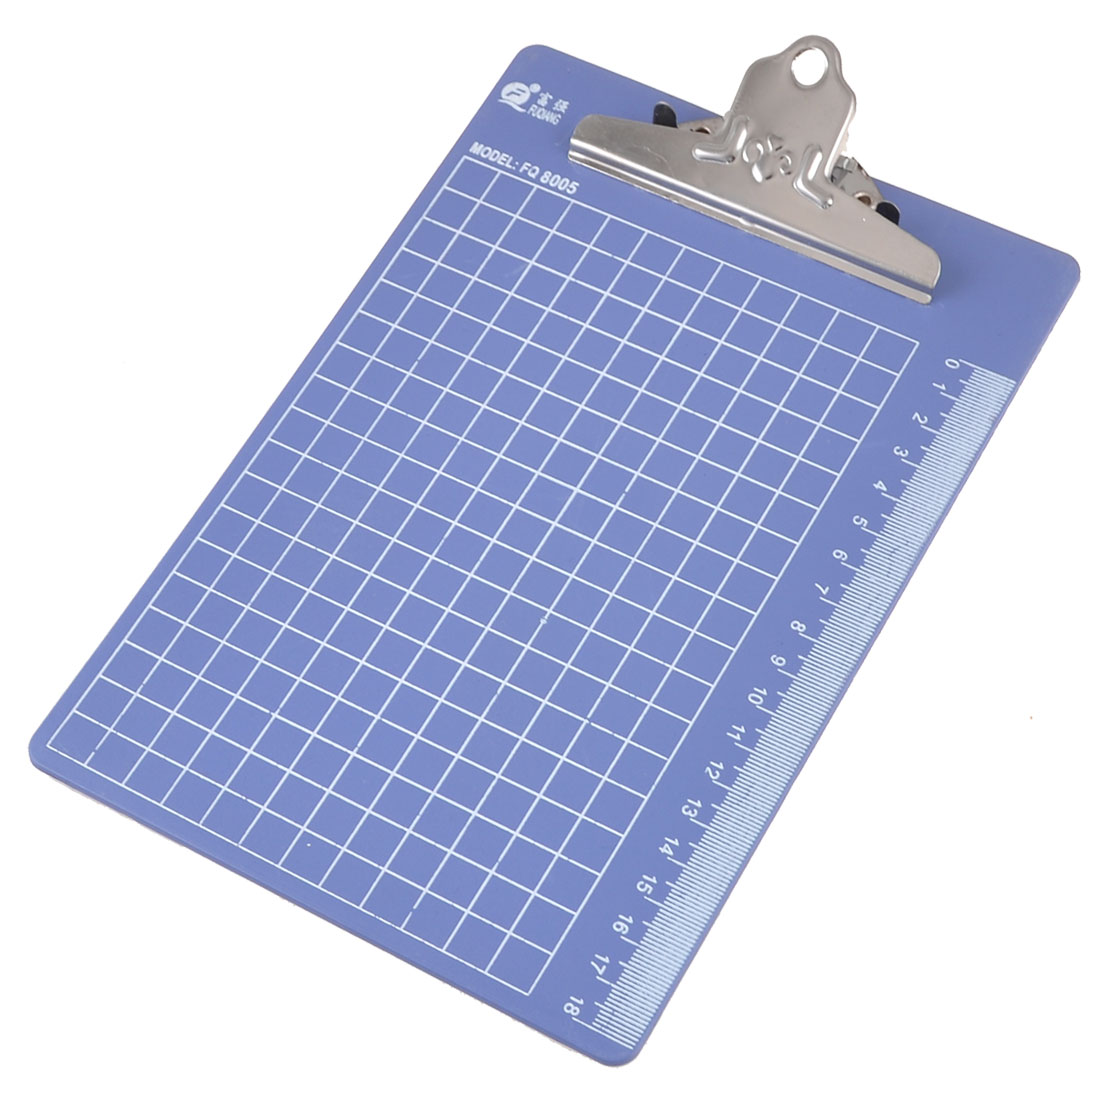 Scale Grids Pattern Plastic A5 Files Documents Menu Paper Clipboard Hardboard Indigo Blue